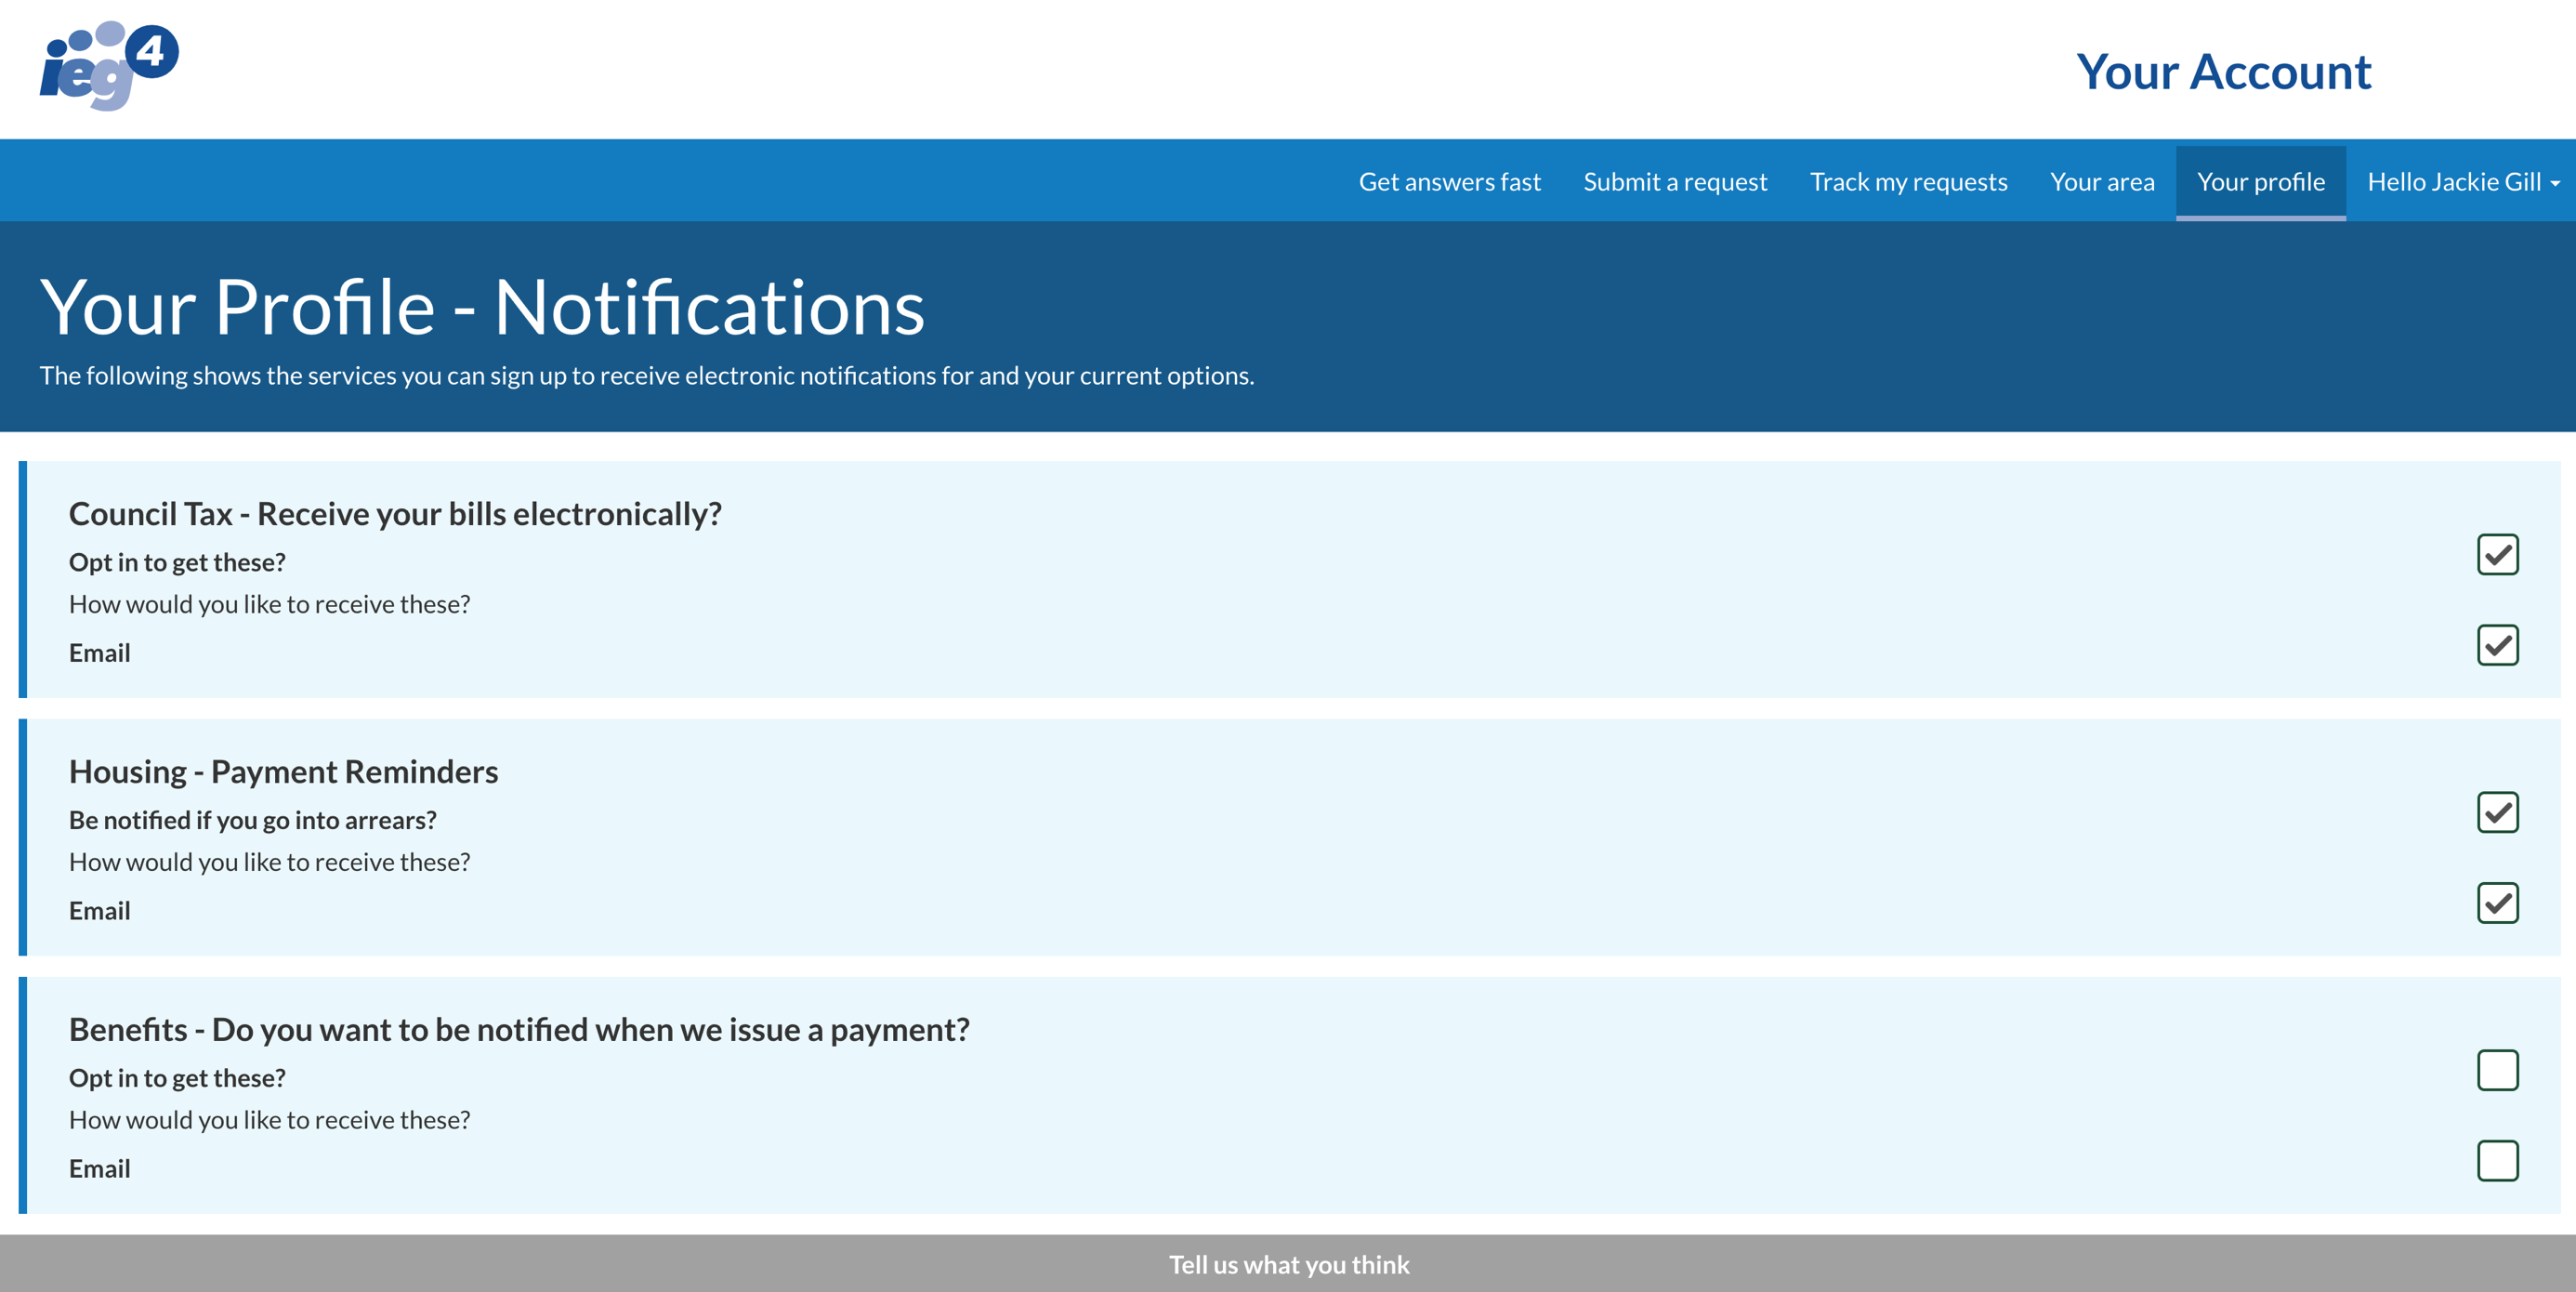 IEG4's OneVu showing managing a citizen profile and notifications